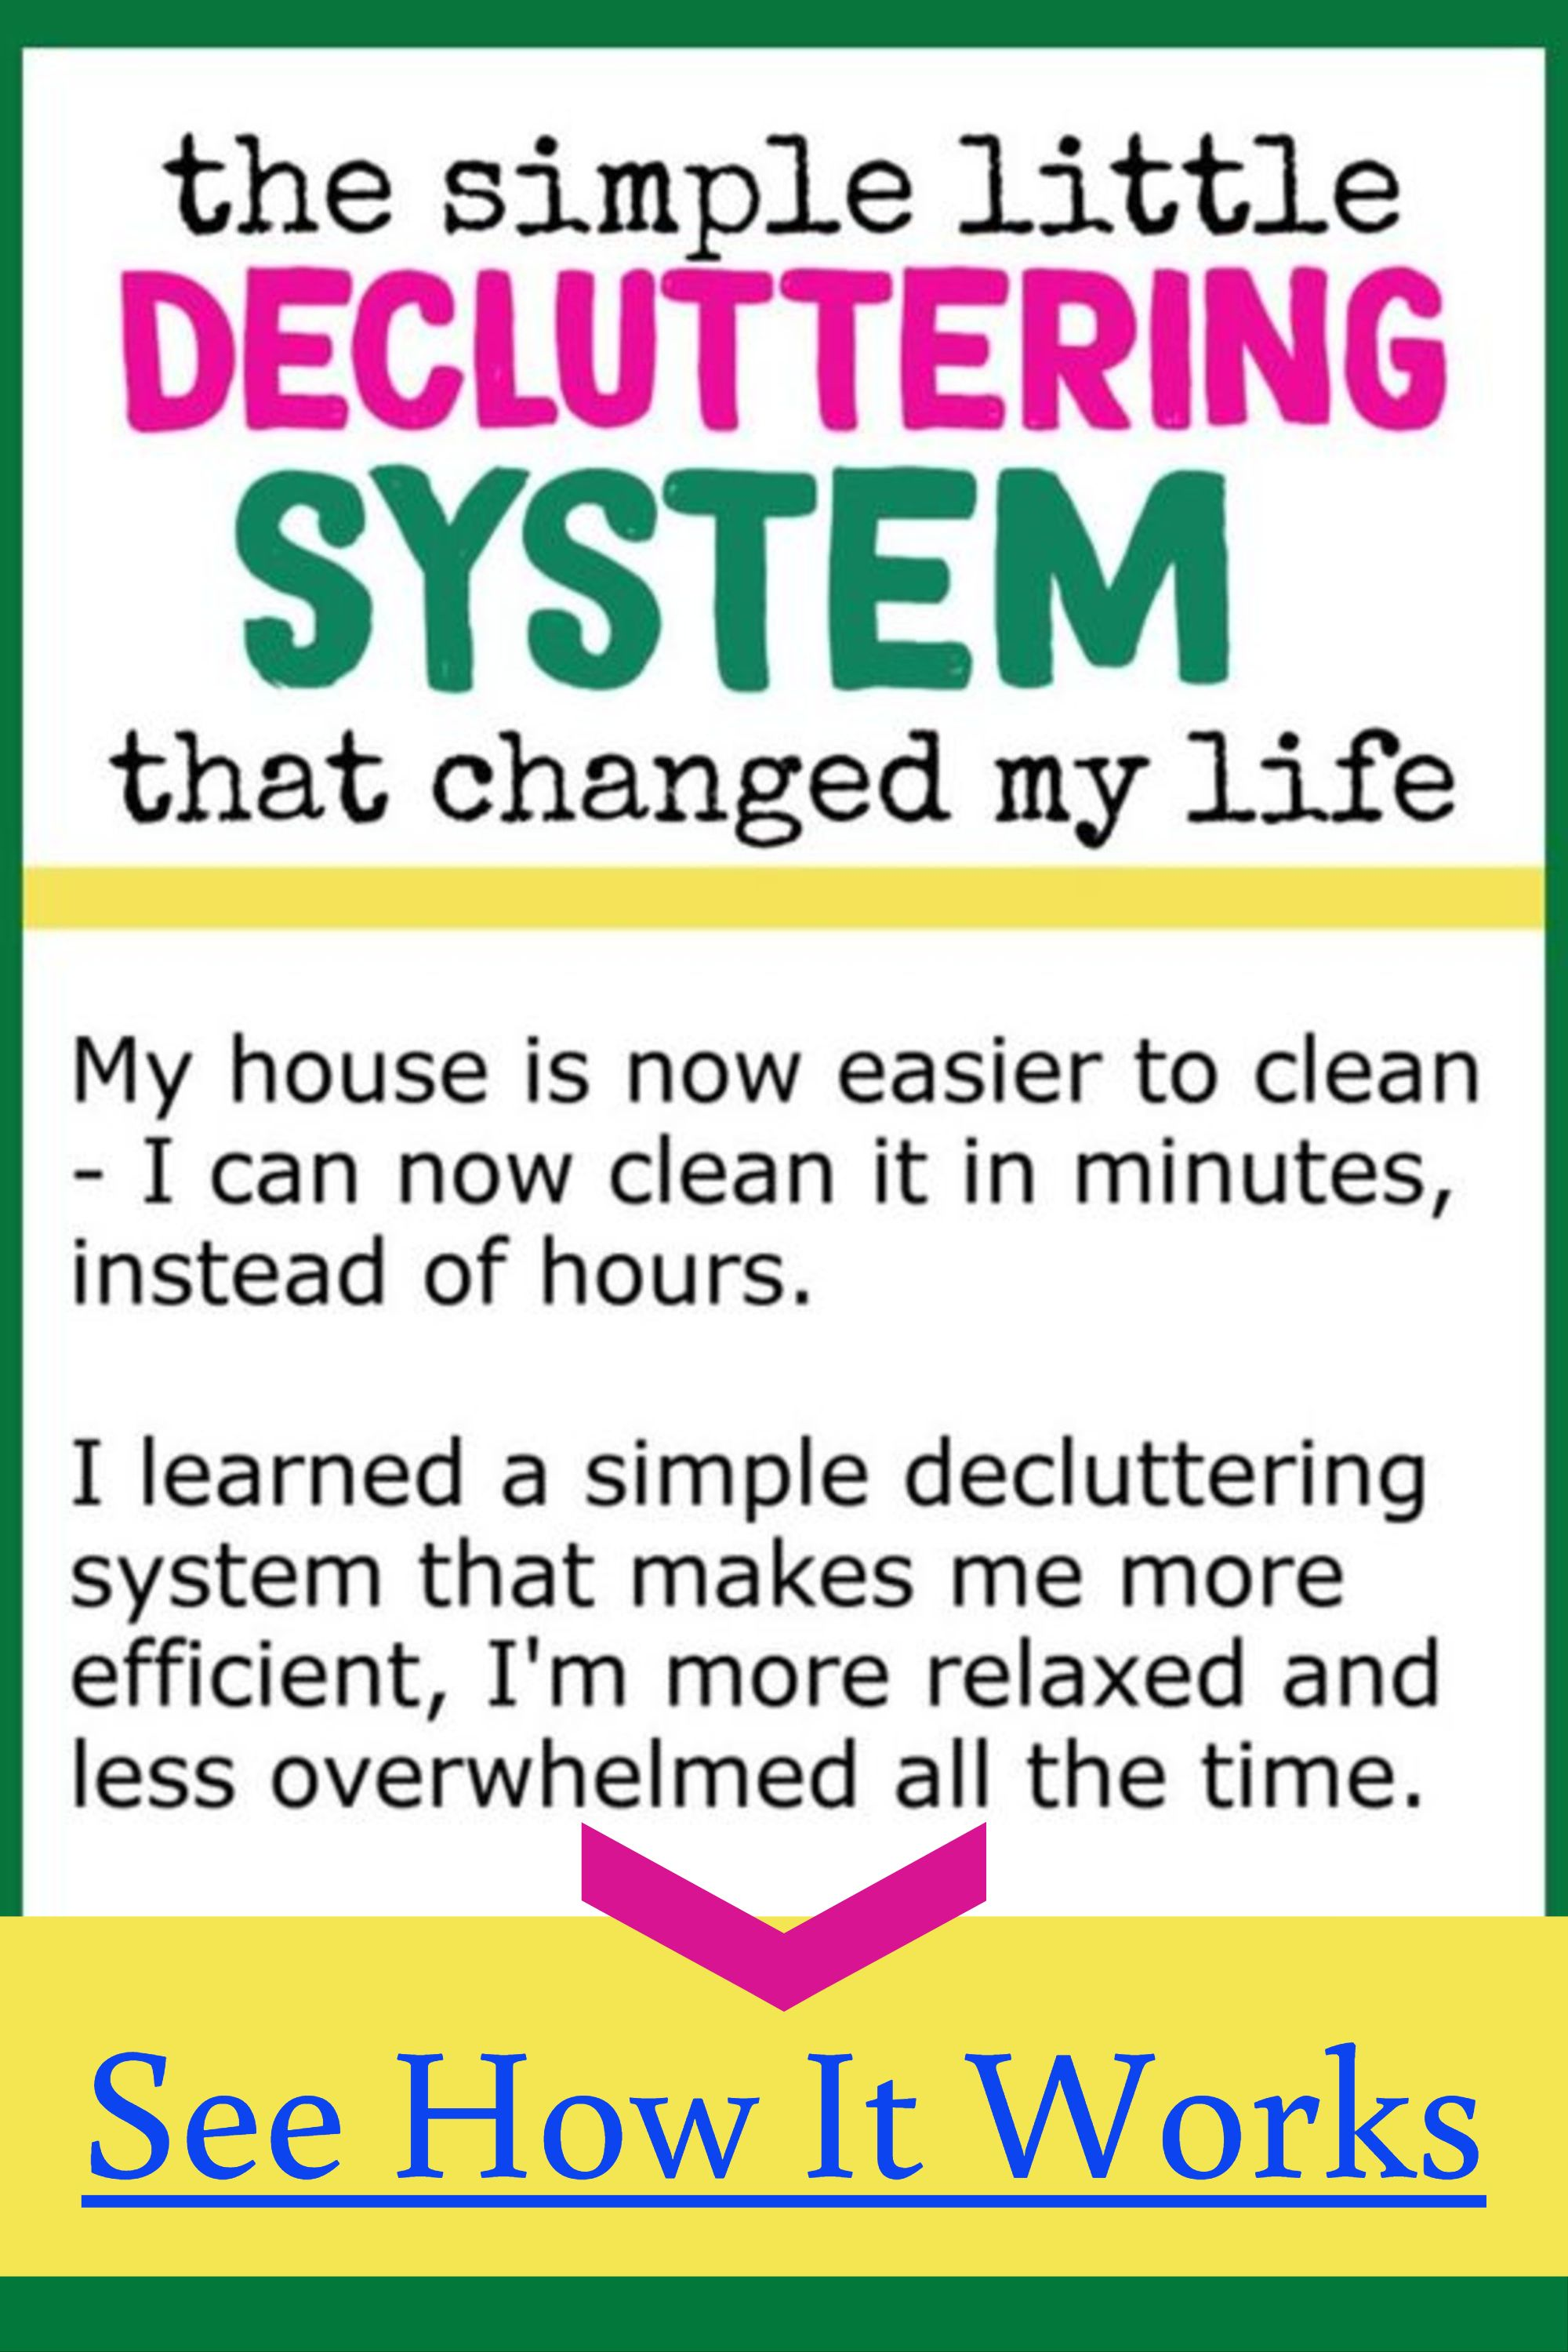 Declutter Your Home Decluttering Ideas Tips Tricks That Work To Get Organized Stay Organized Decluttering Your Life Declutter Your Home Declutter Home Organization Hacks